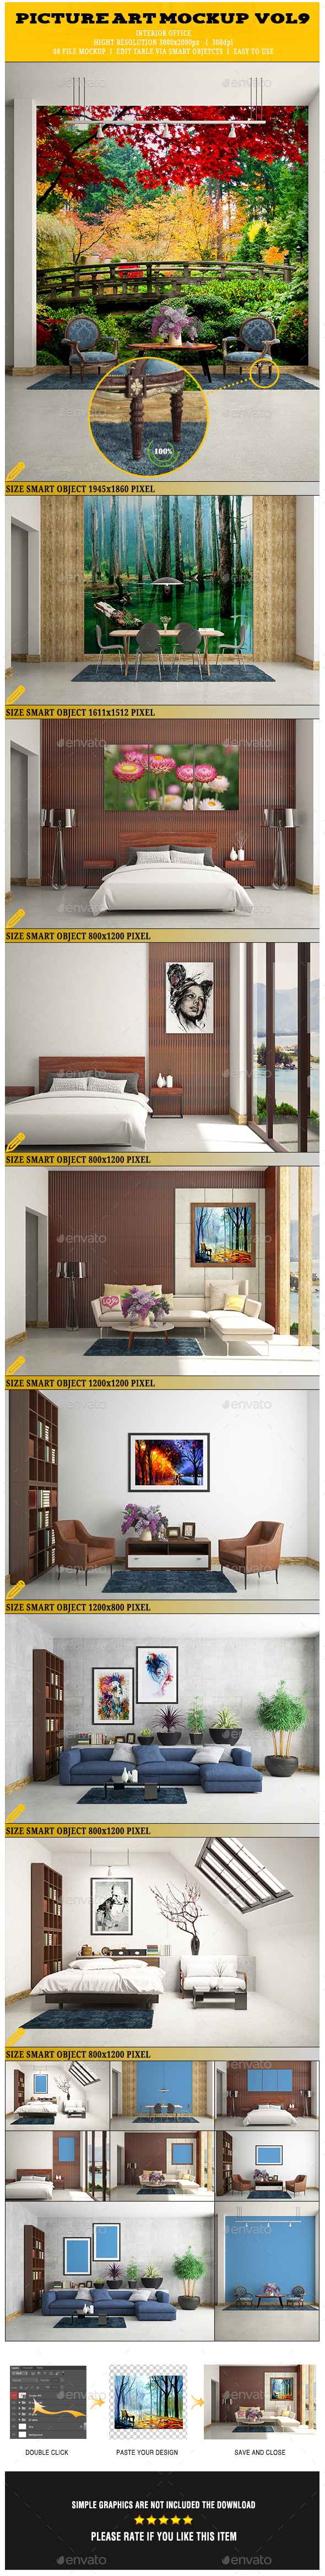 Picture Art Mockup [Vol 9] - Posters Print